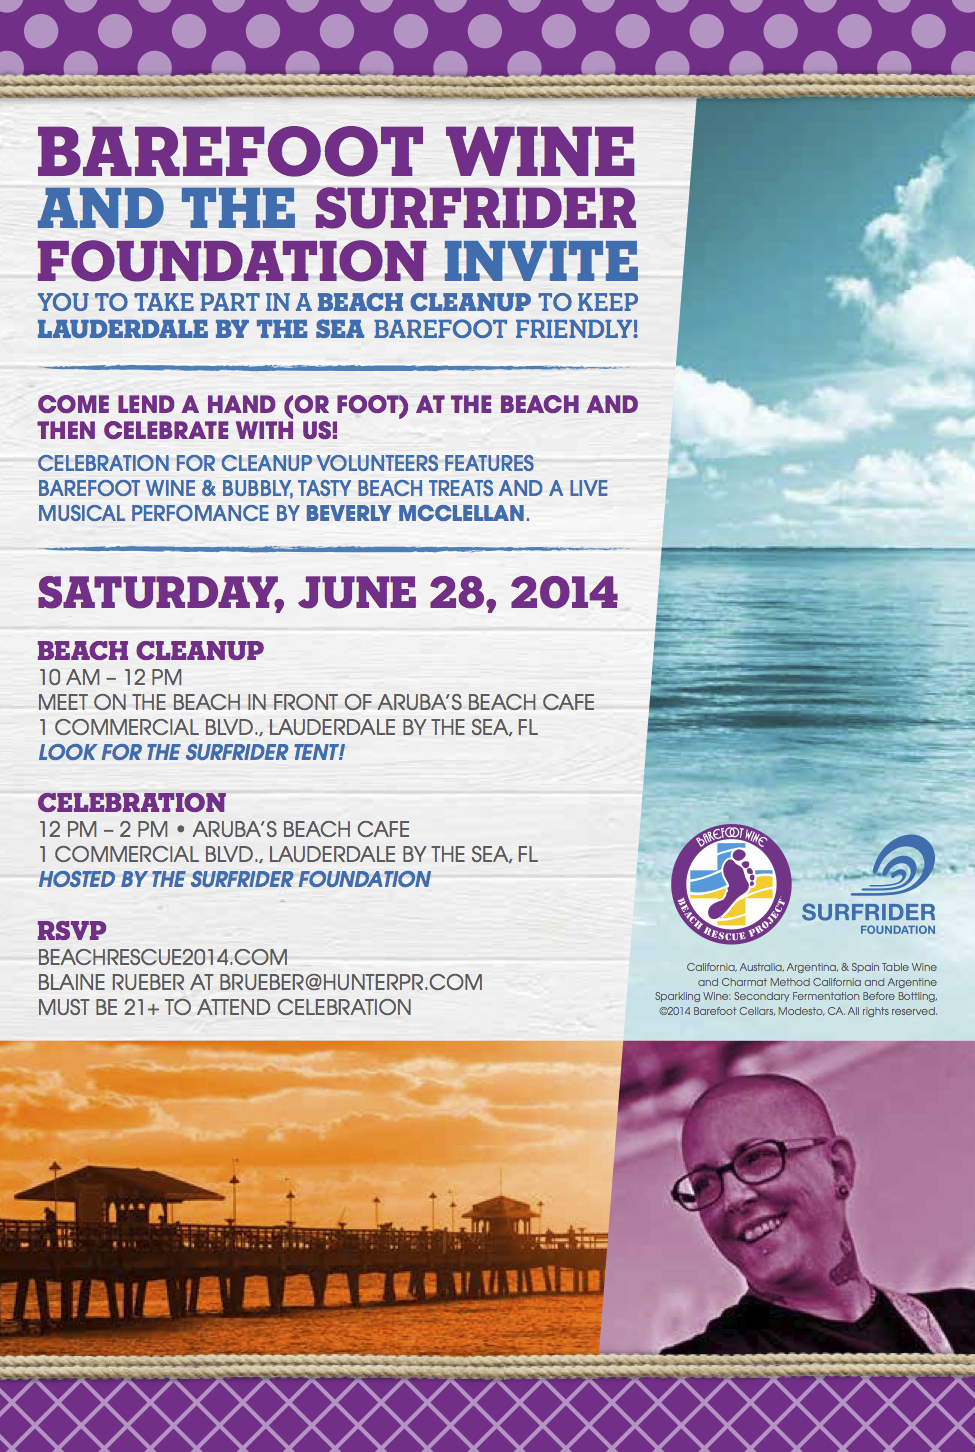 Barefoot Beach Cleanup & Celebration June 28th!